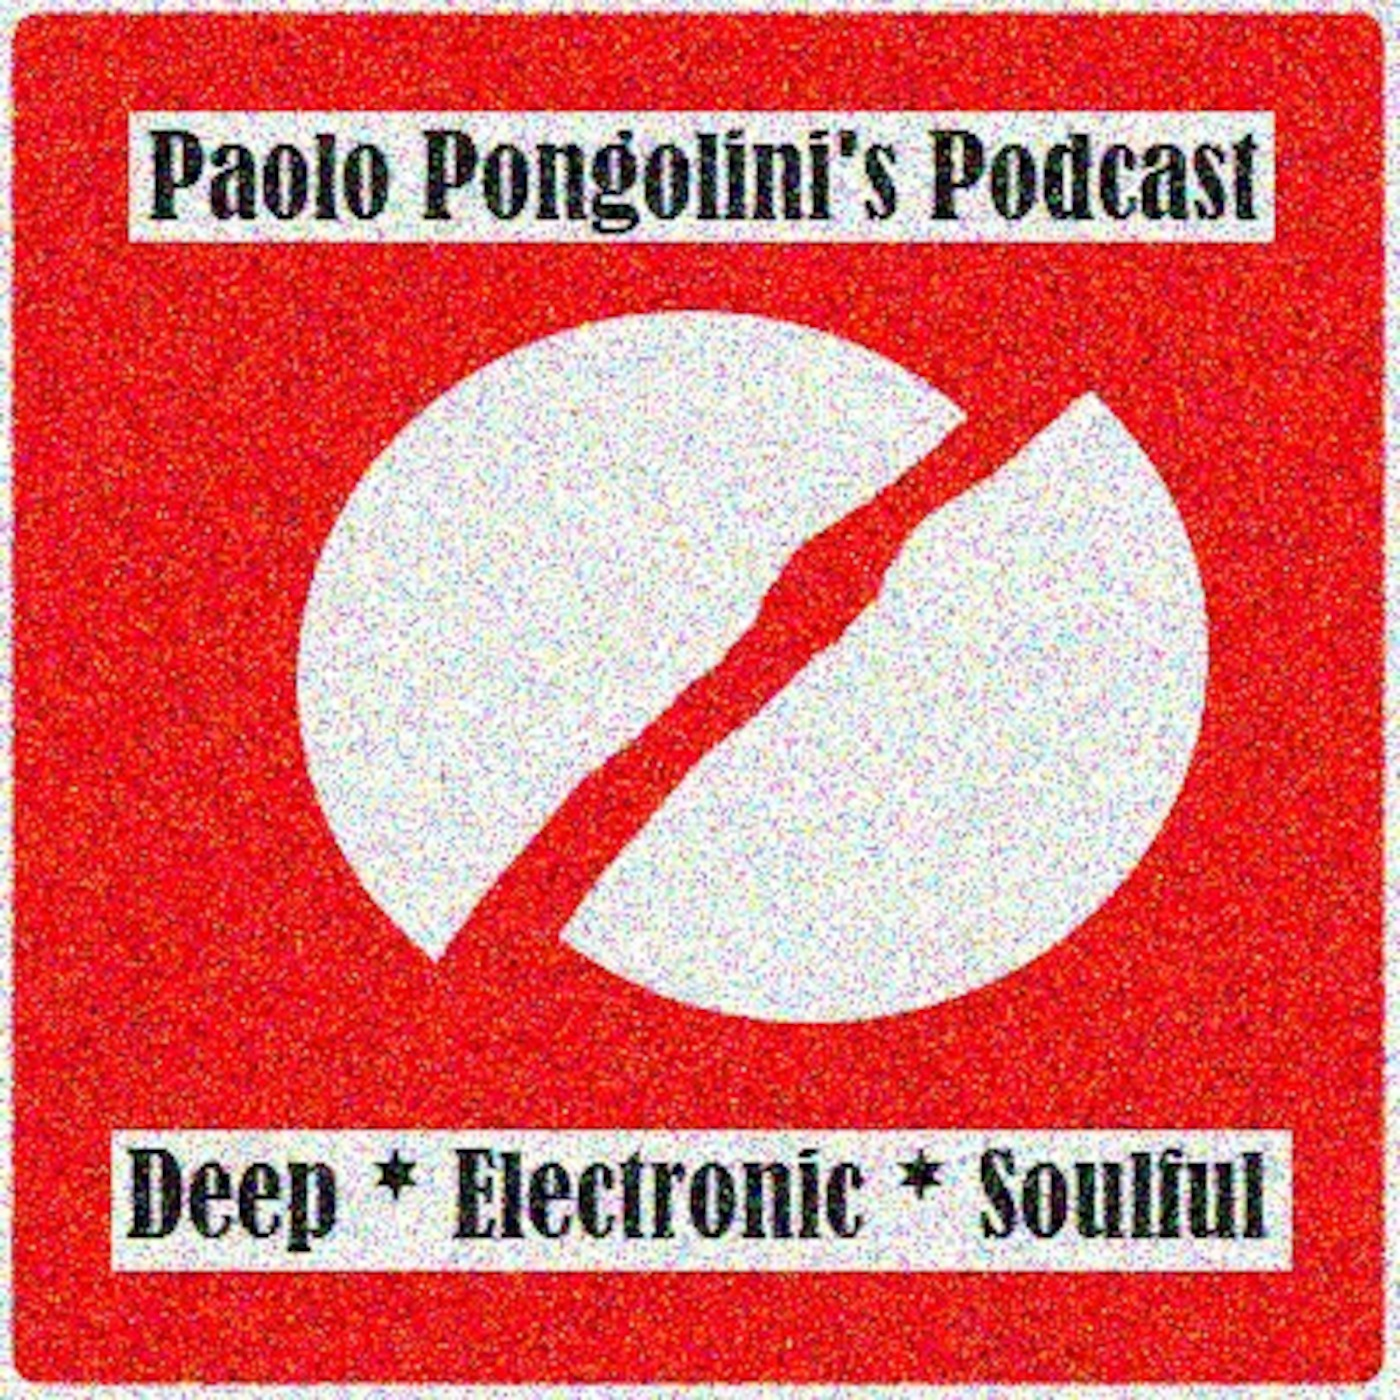 Paolo Pongolini's Podcast